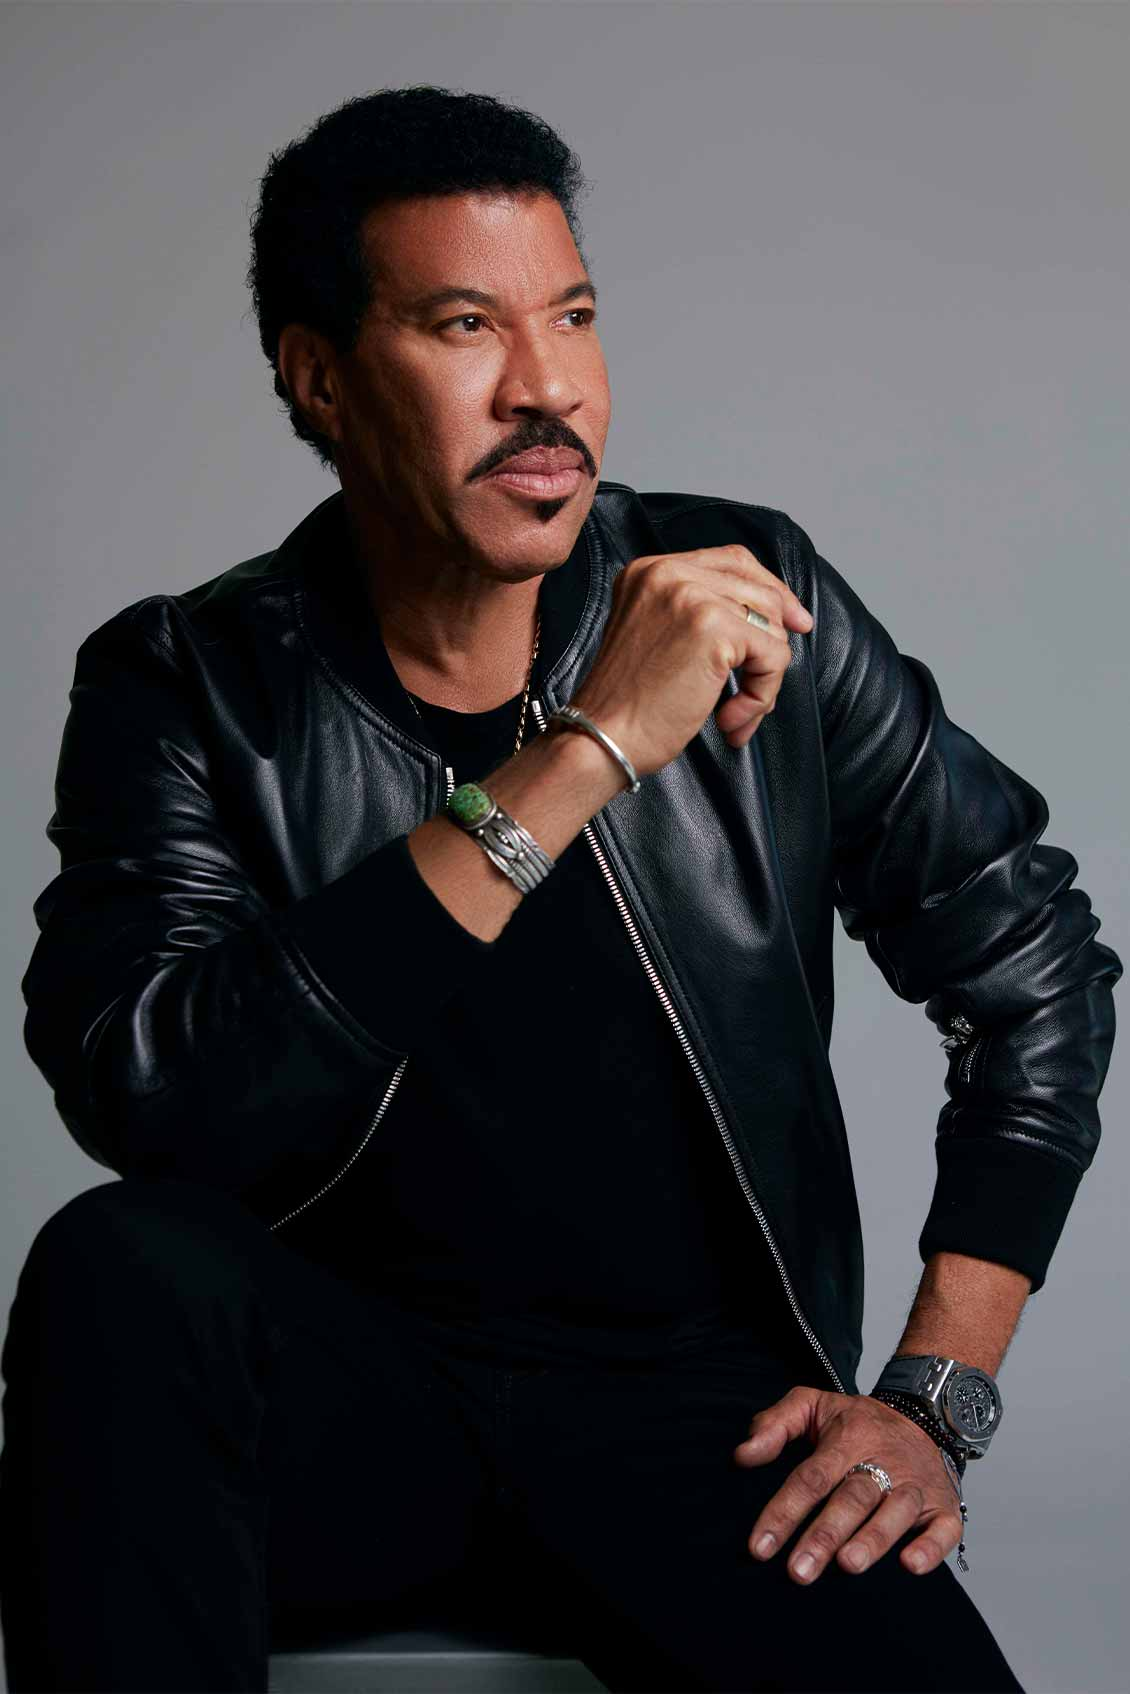 LIONEL RICHIE show announcement